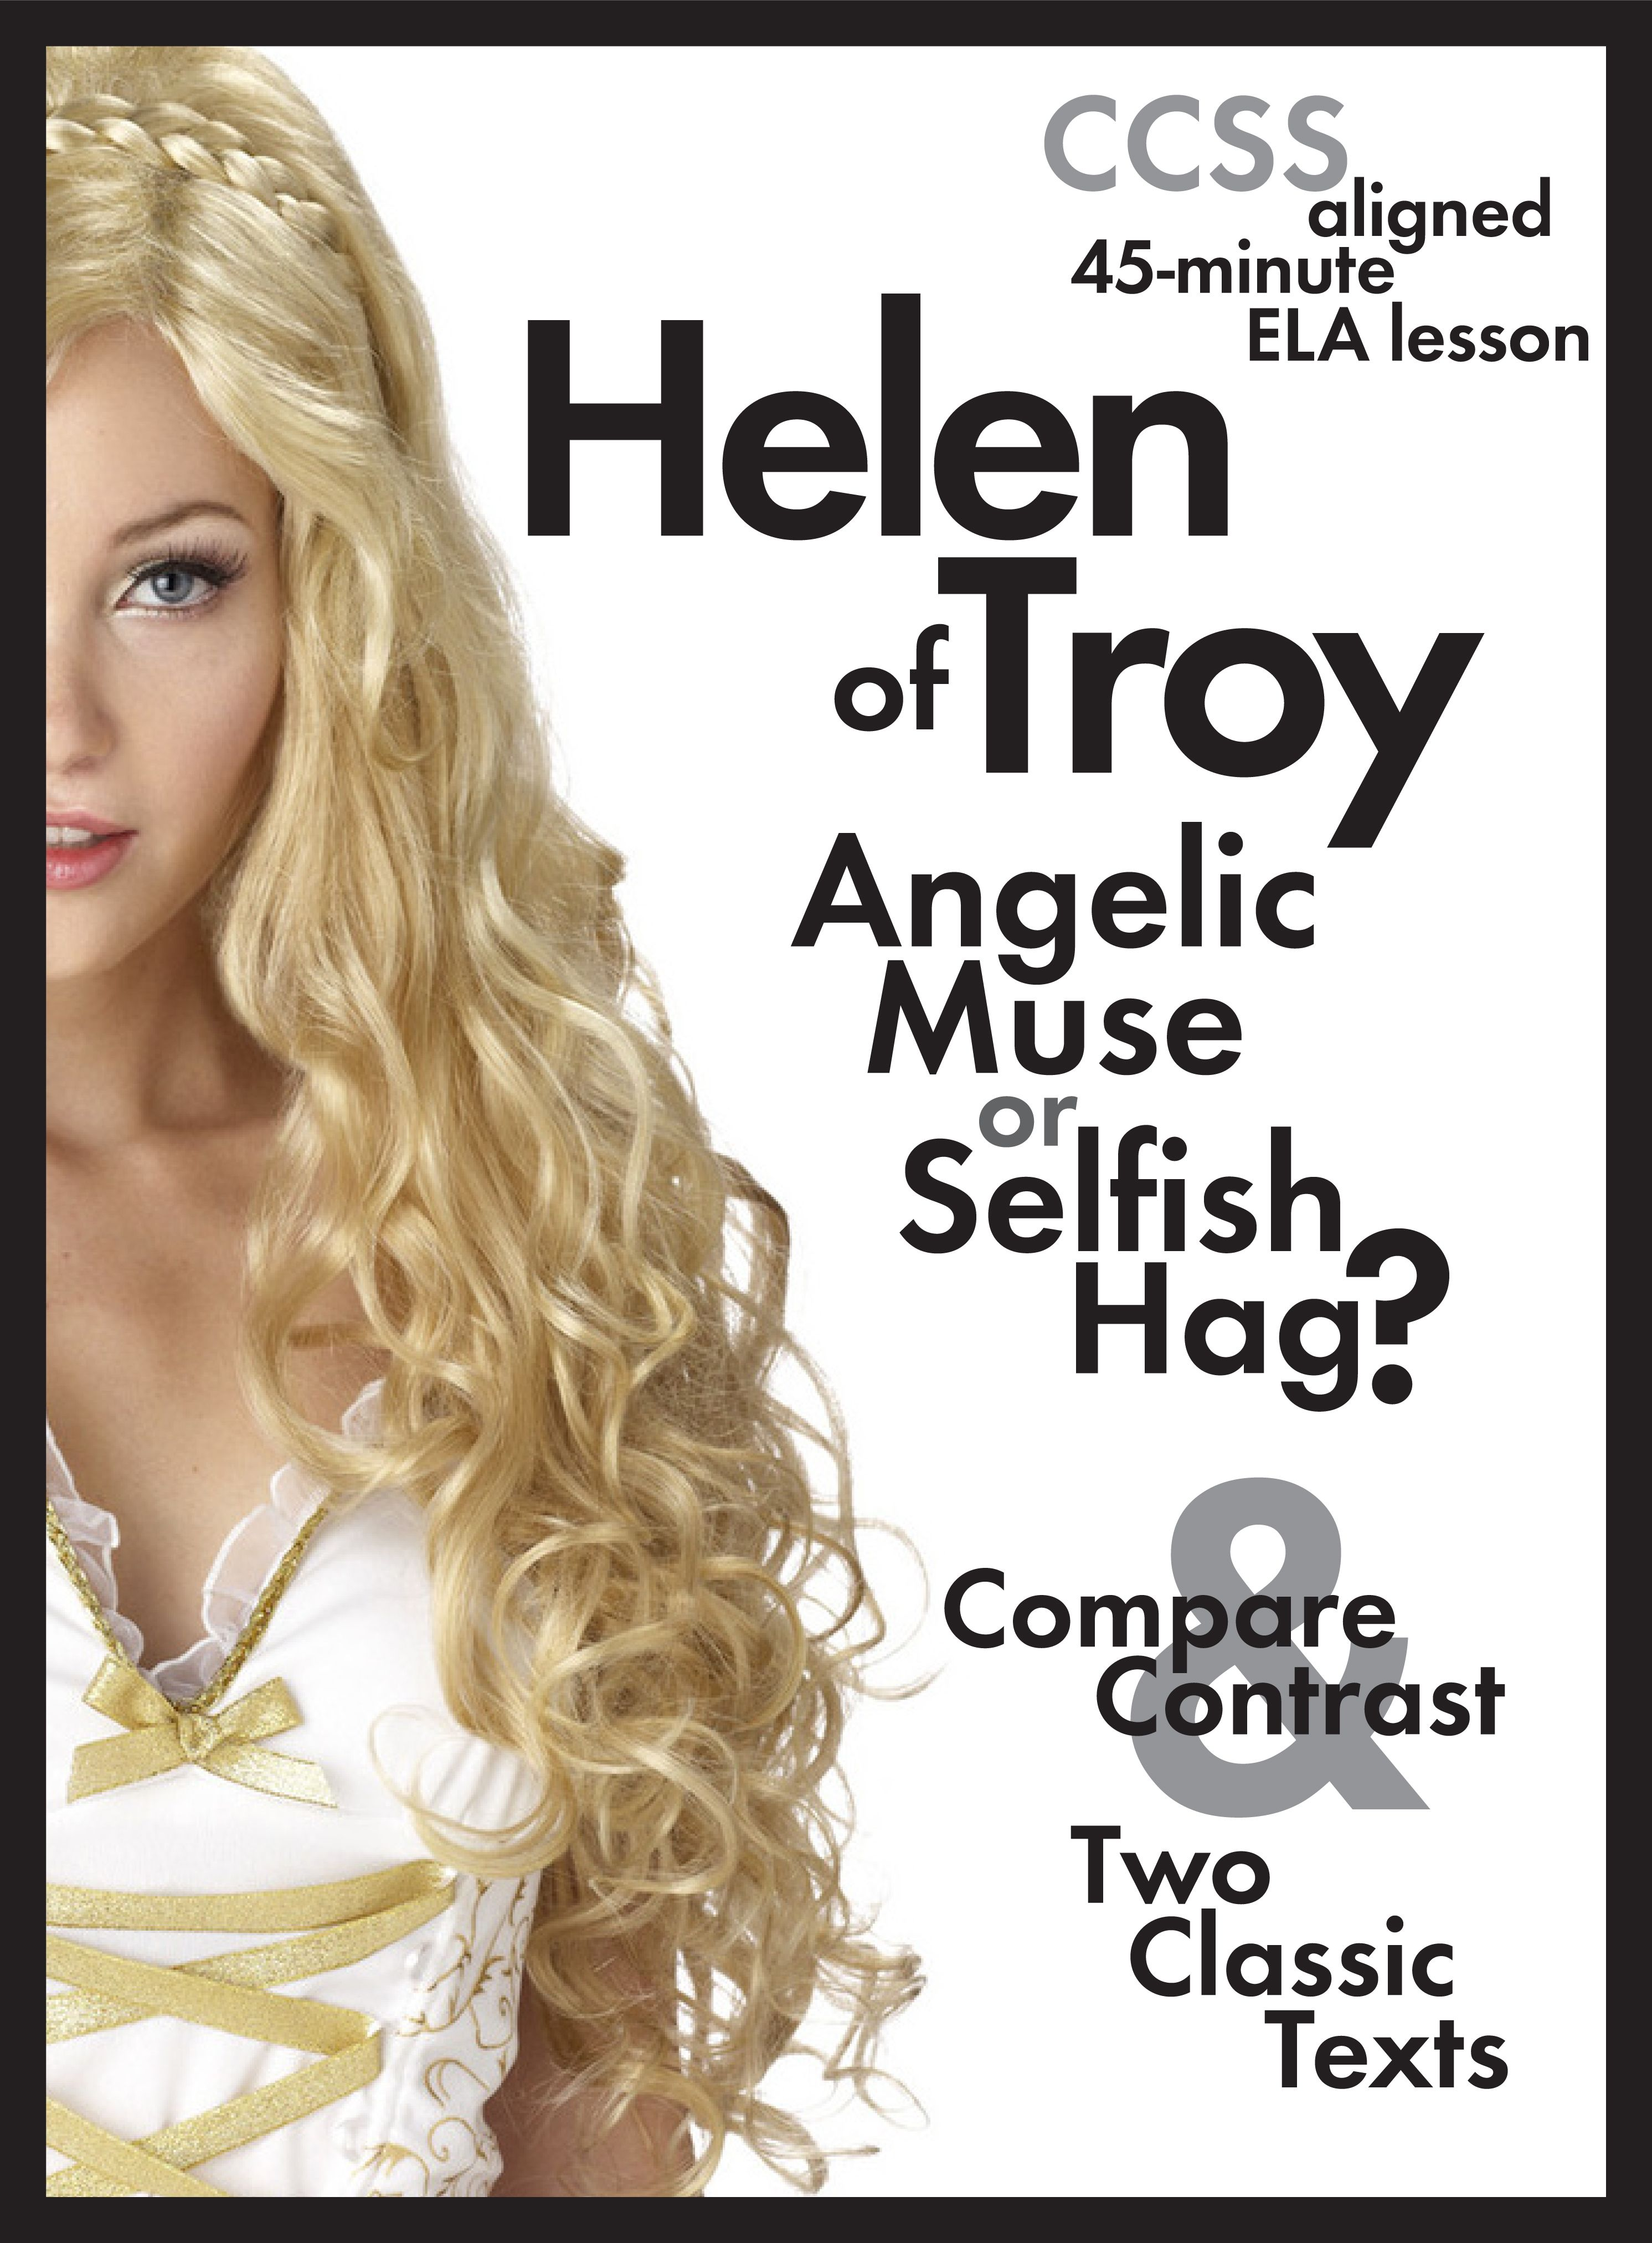 Ah Helen of Troy the face that launched a thousand ships